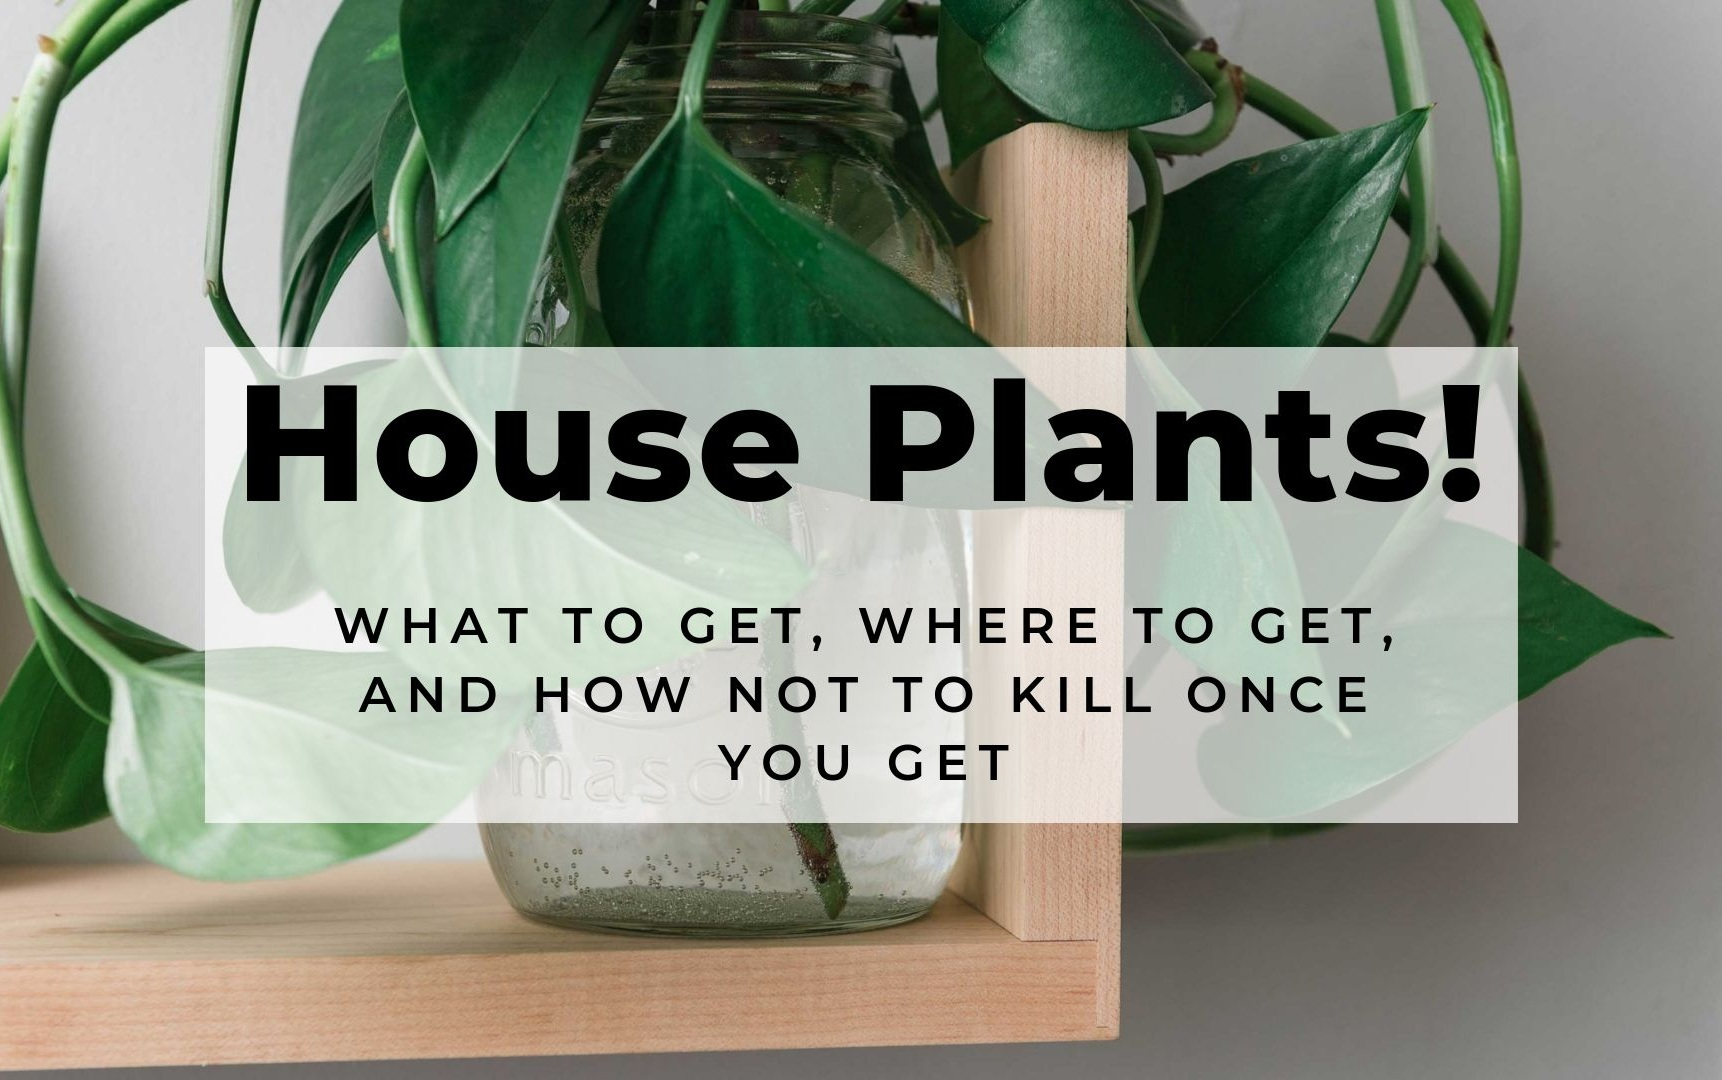 House+Plants%21+How+To+Get+Them%2C+Where+to+Get+Them%2C+and+How+Not+To+Kill+Them+When+You+Get+Them.jpg